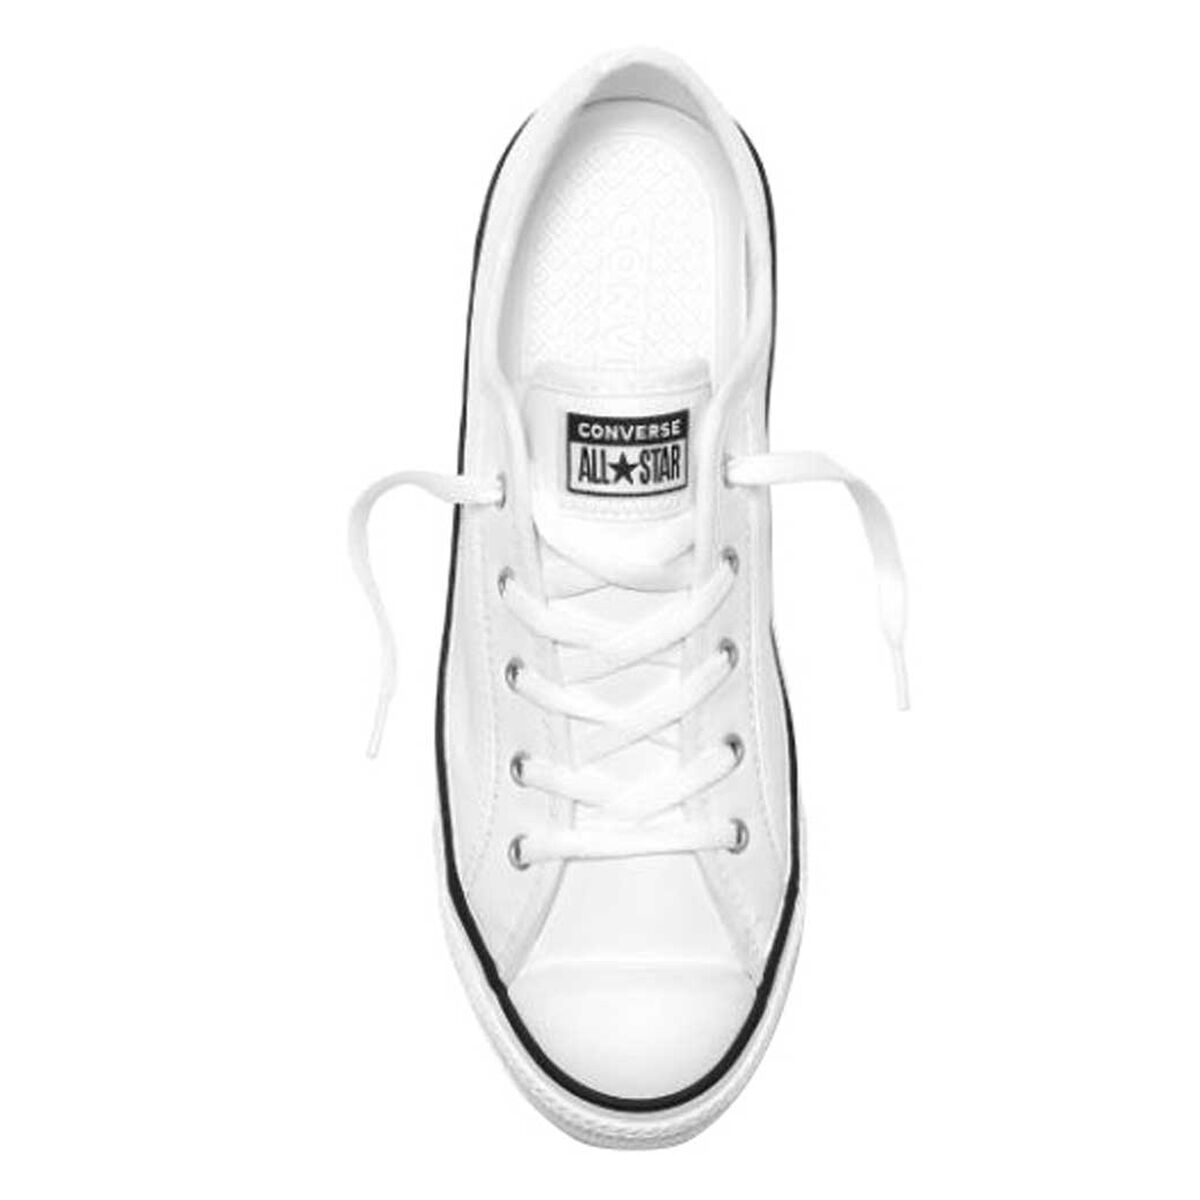 womens white leather converse shoes